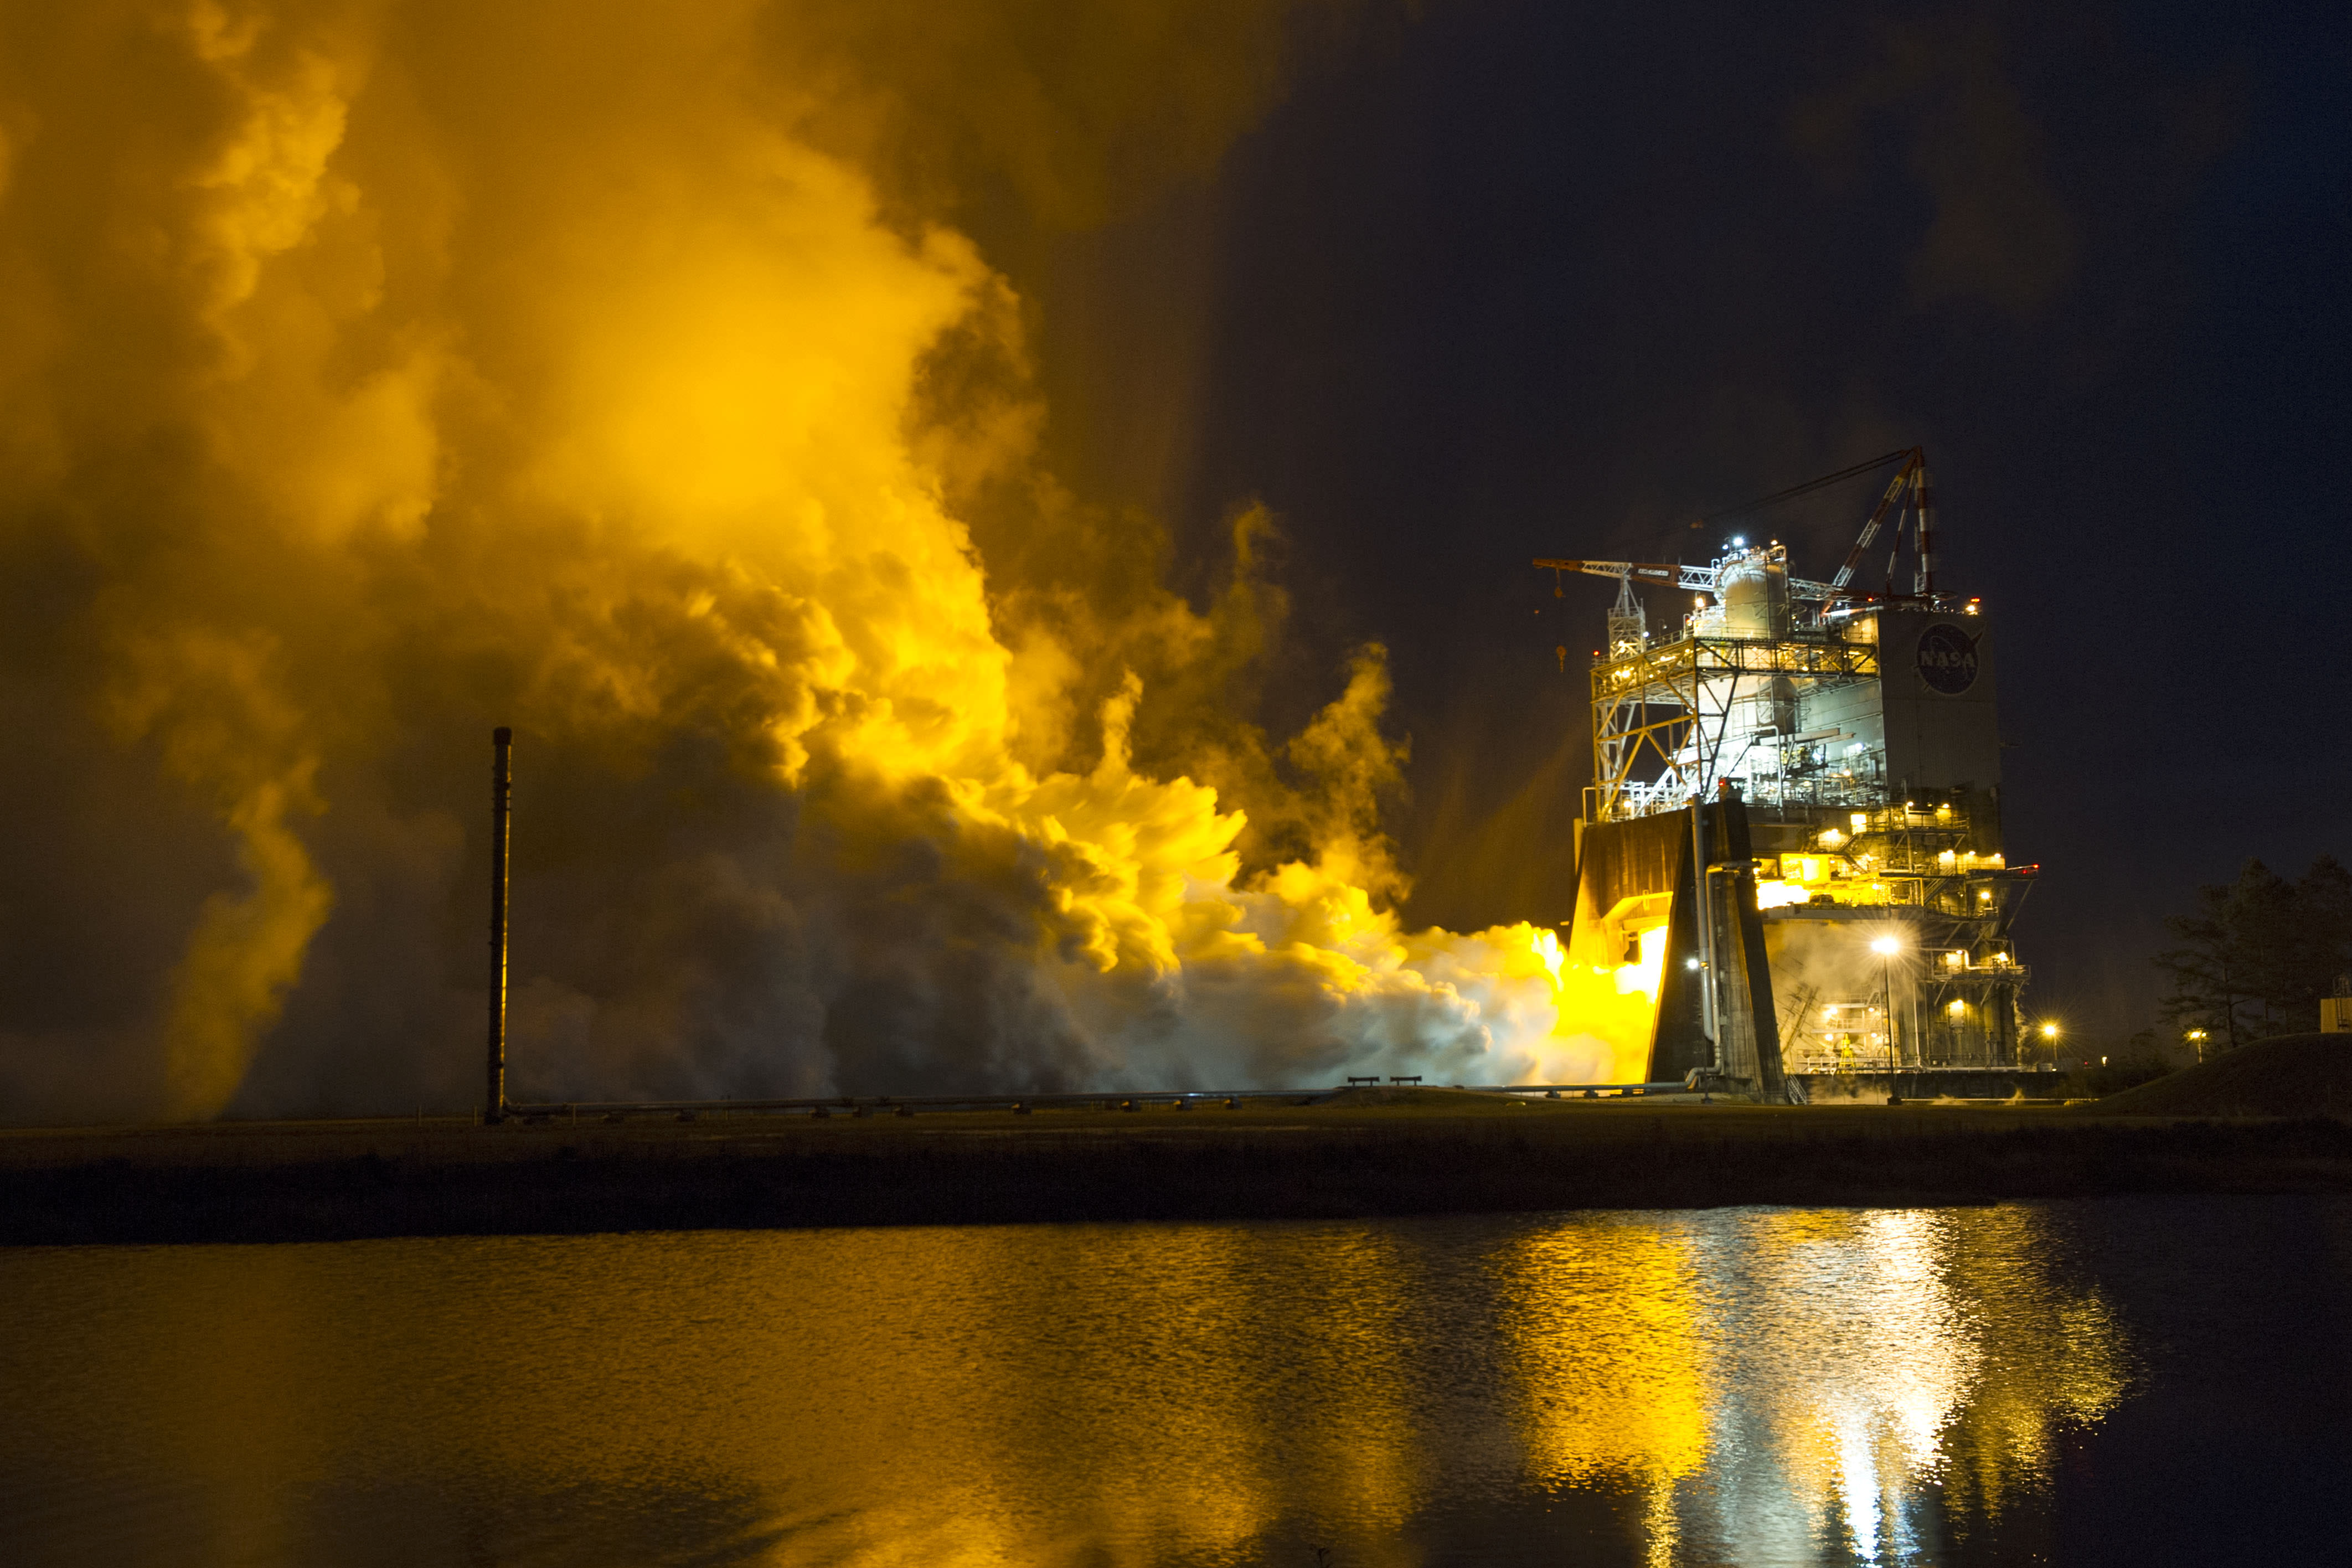 The RS-25 engine fires up for a 500-second test Jan. 9, 2015 at NASA's Stennis Space Center near Bay St. Louis, Mississippi.   Credit: NASA